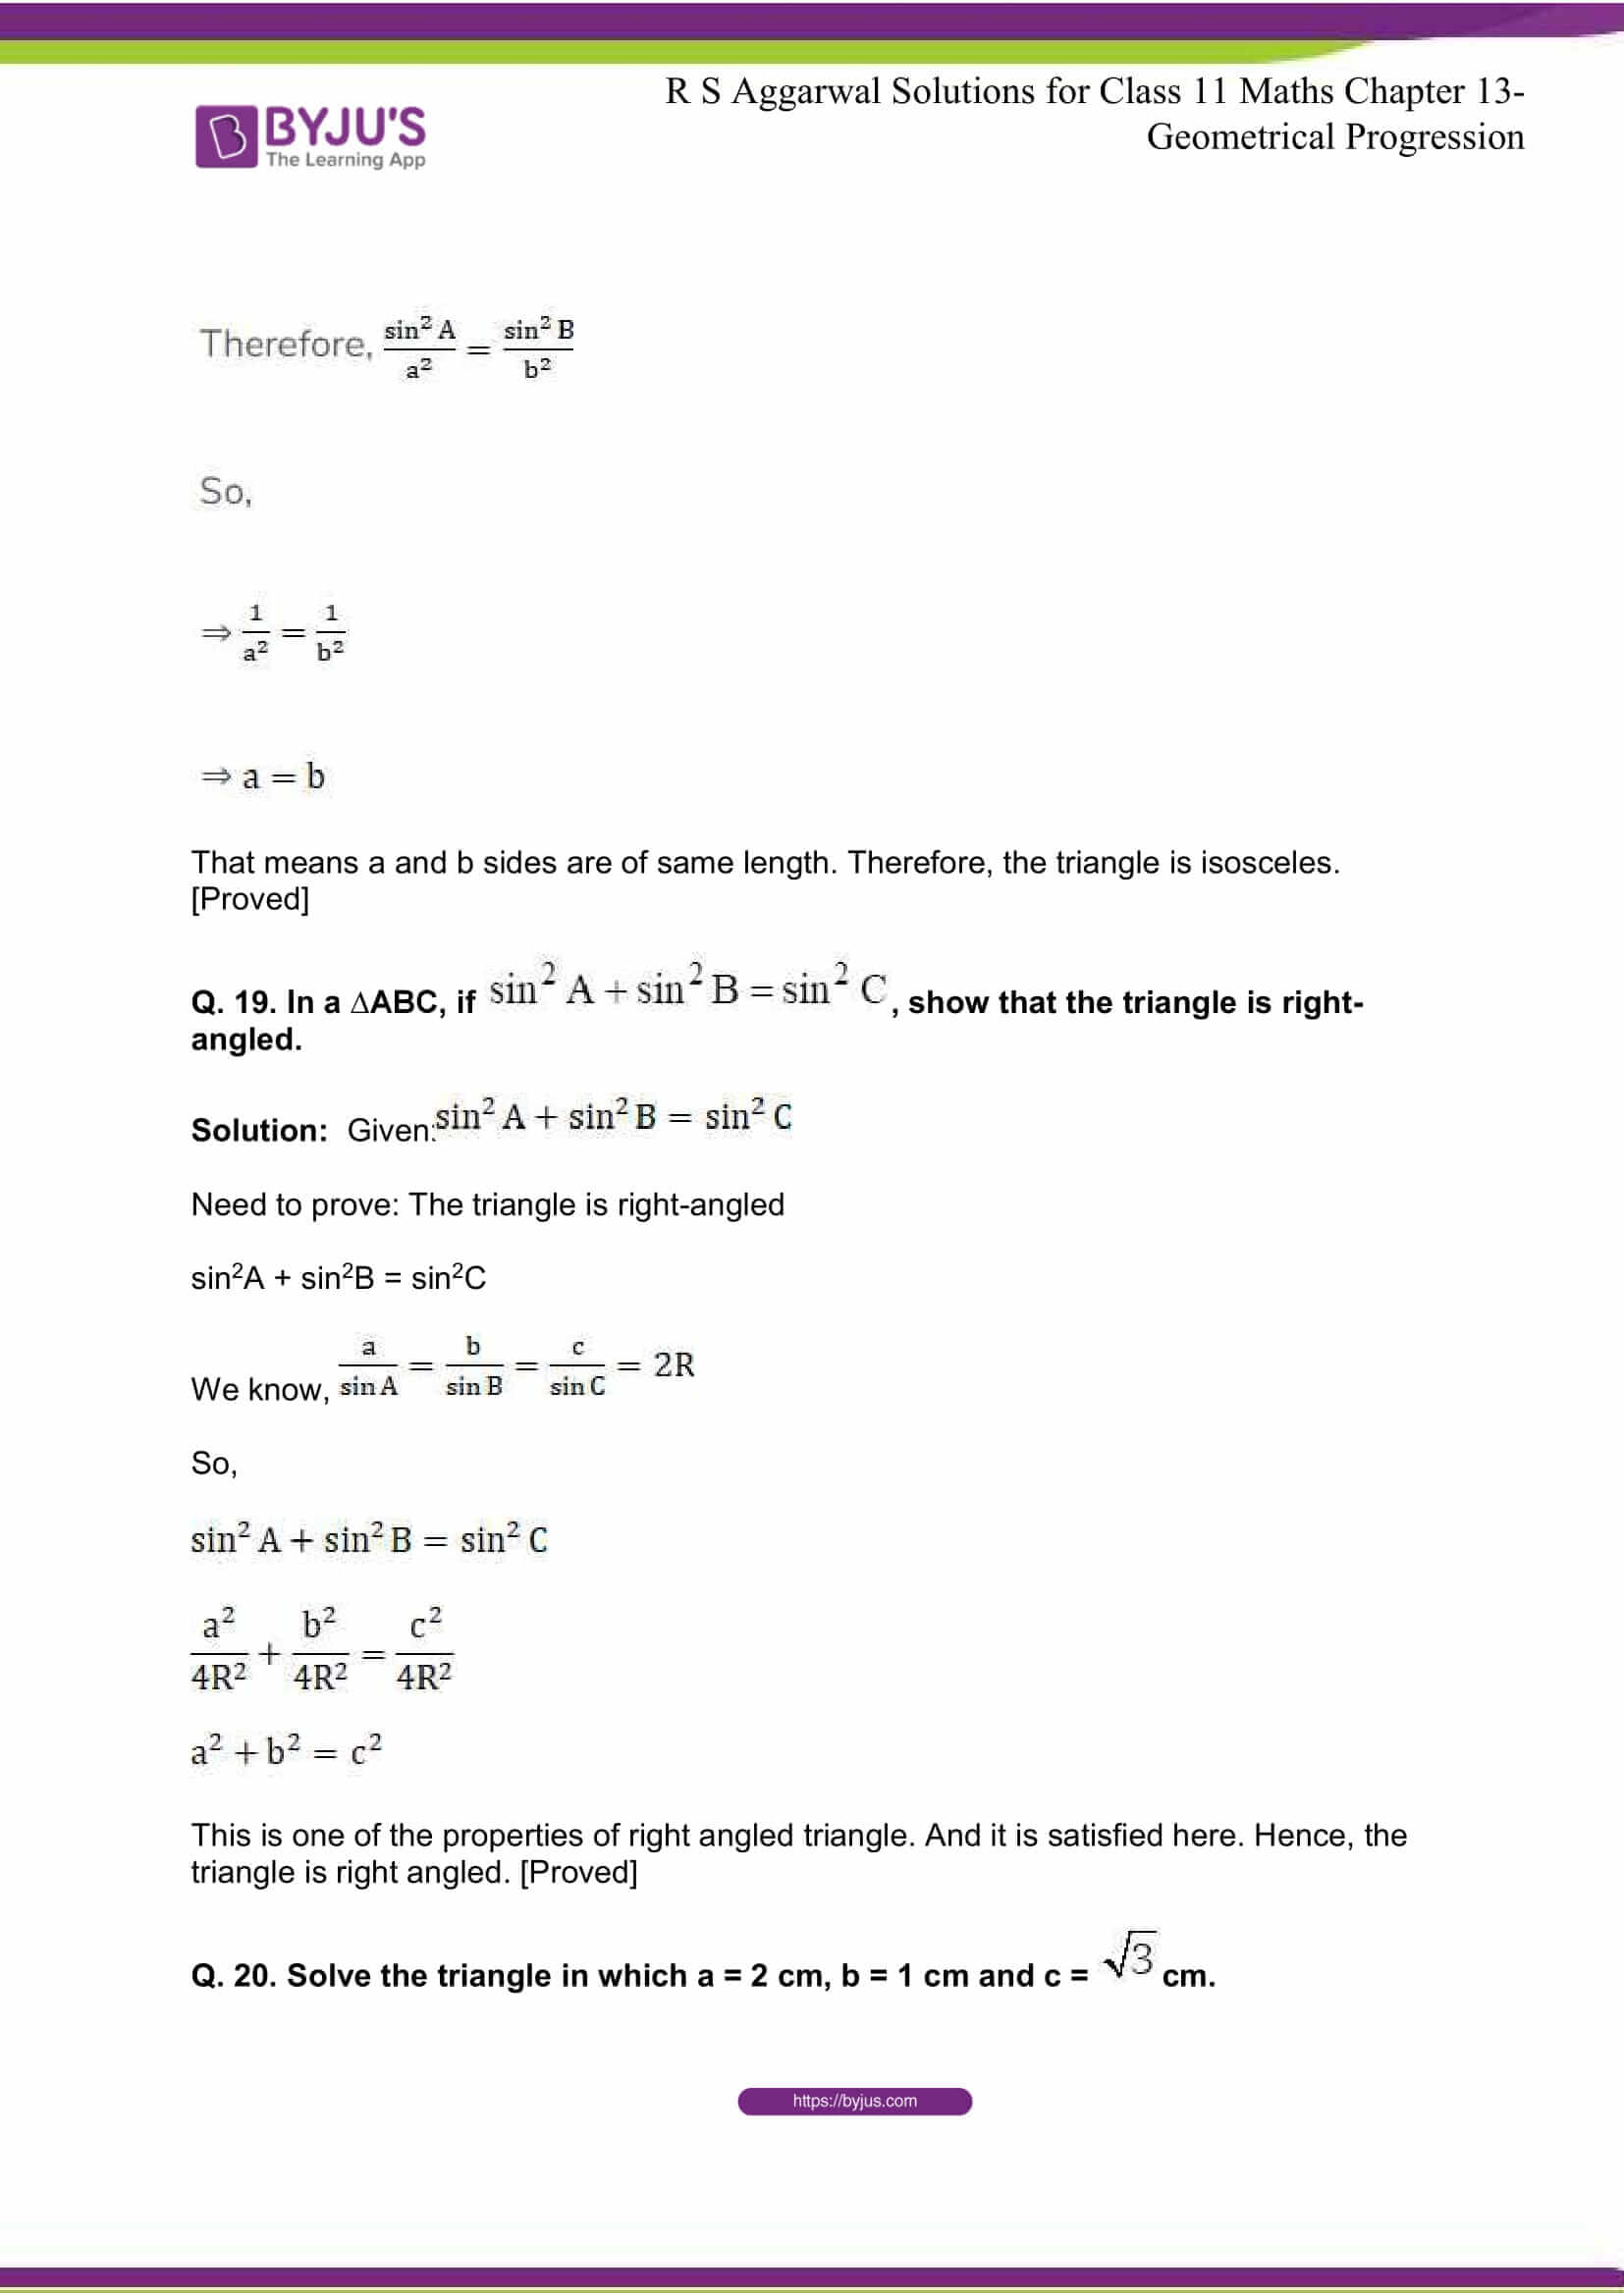 RS Aggarwal Sol Class 11 Maths Chapter 18